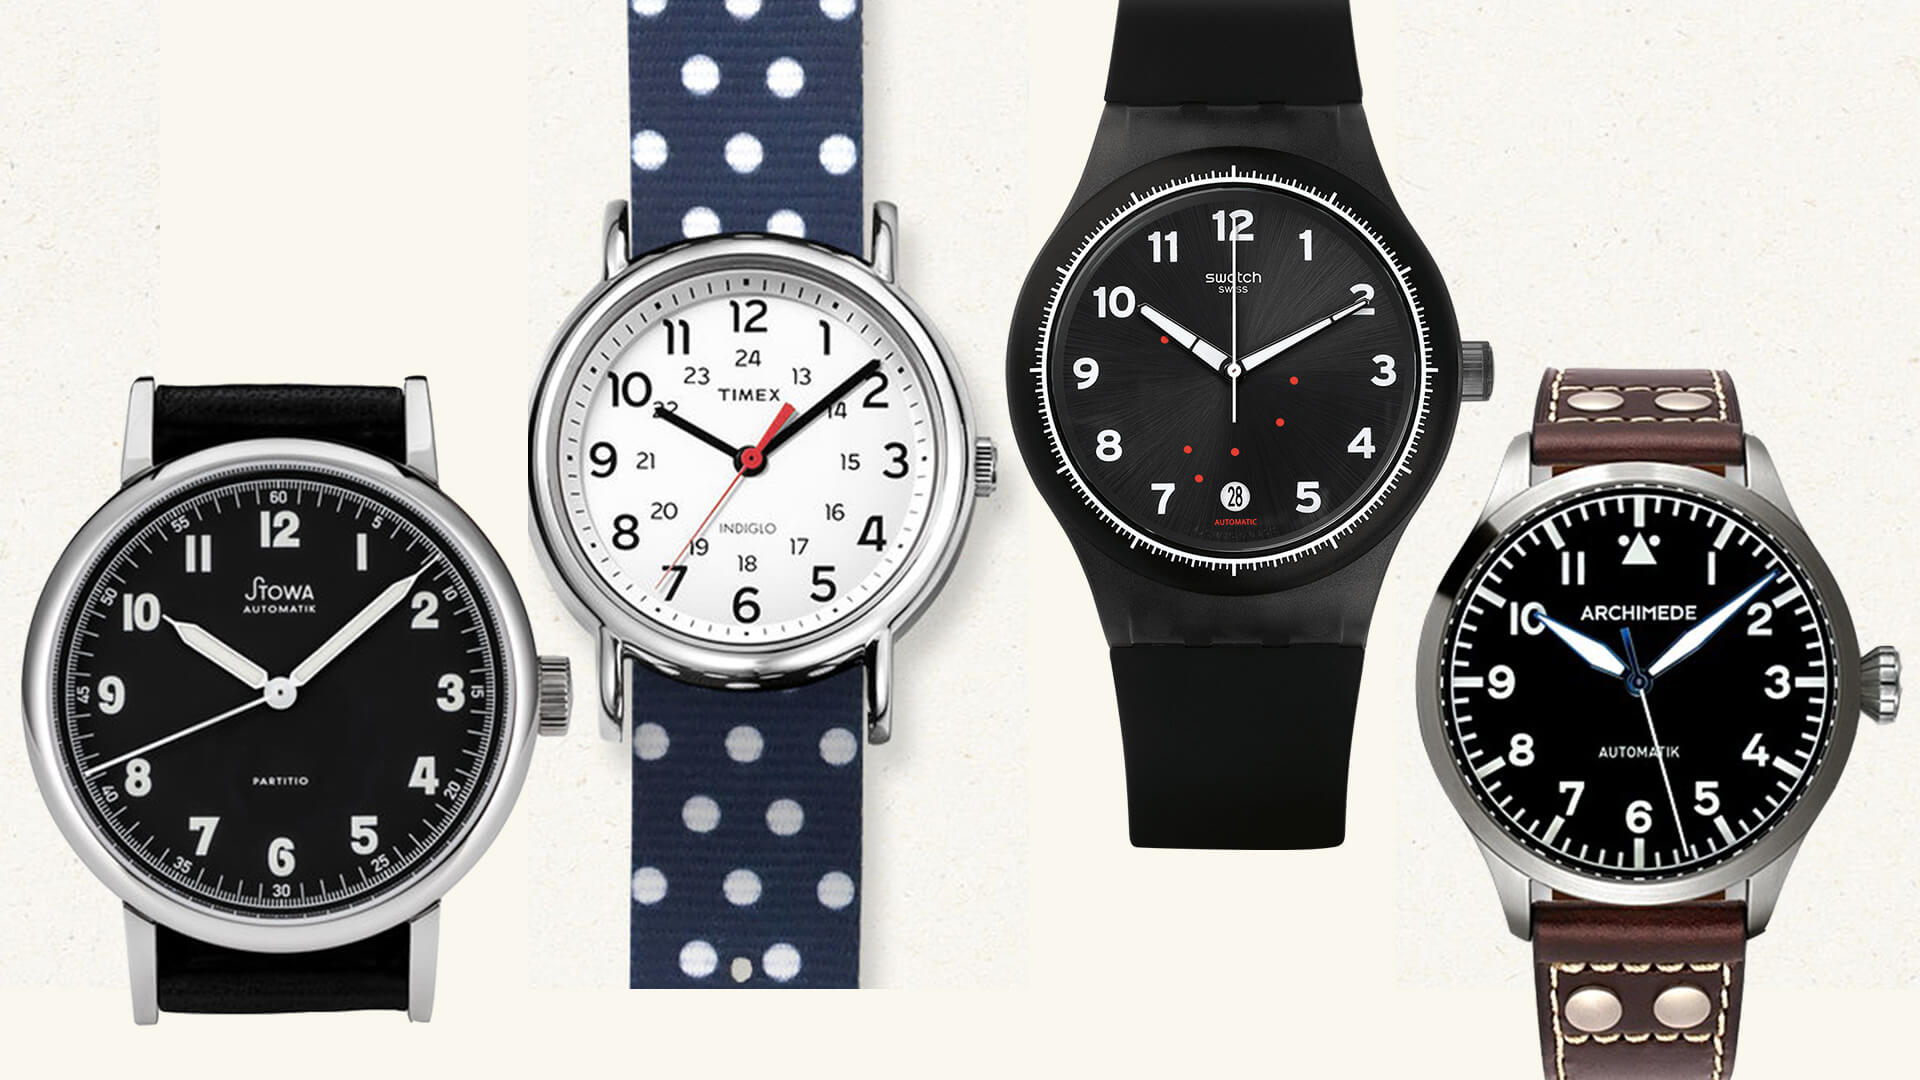 Watch 101: The BEST Modern Watches for Beginners